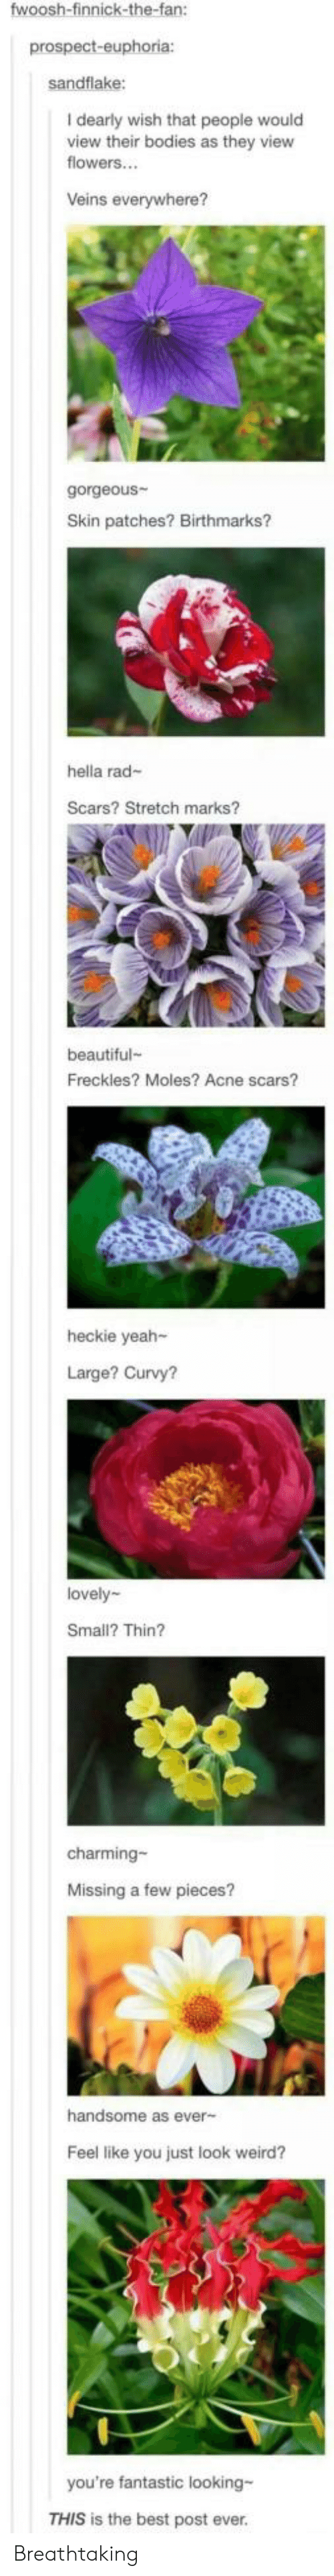 Charming: fwoosh-finnick-the-fan:  prospect-euphoria:  sandflake:  I dearly wish that people would  view their bodies as they view  flowers...  Veins everywhere?  gorgeous  Skin patches? Birthmarks?  hella rad-  Scars? Stretch marks?  beautiful  Freckles? Moles? Acne scars?  heckie yeah-  Large? Curvy?  lovely  Small? Thin?  charming-  Missing a few pieces?  handsome as ever-  Feel like you just look weird?  you're fantastic looking-  THIS is the best post ever. Breathtaking